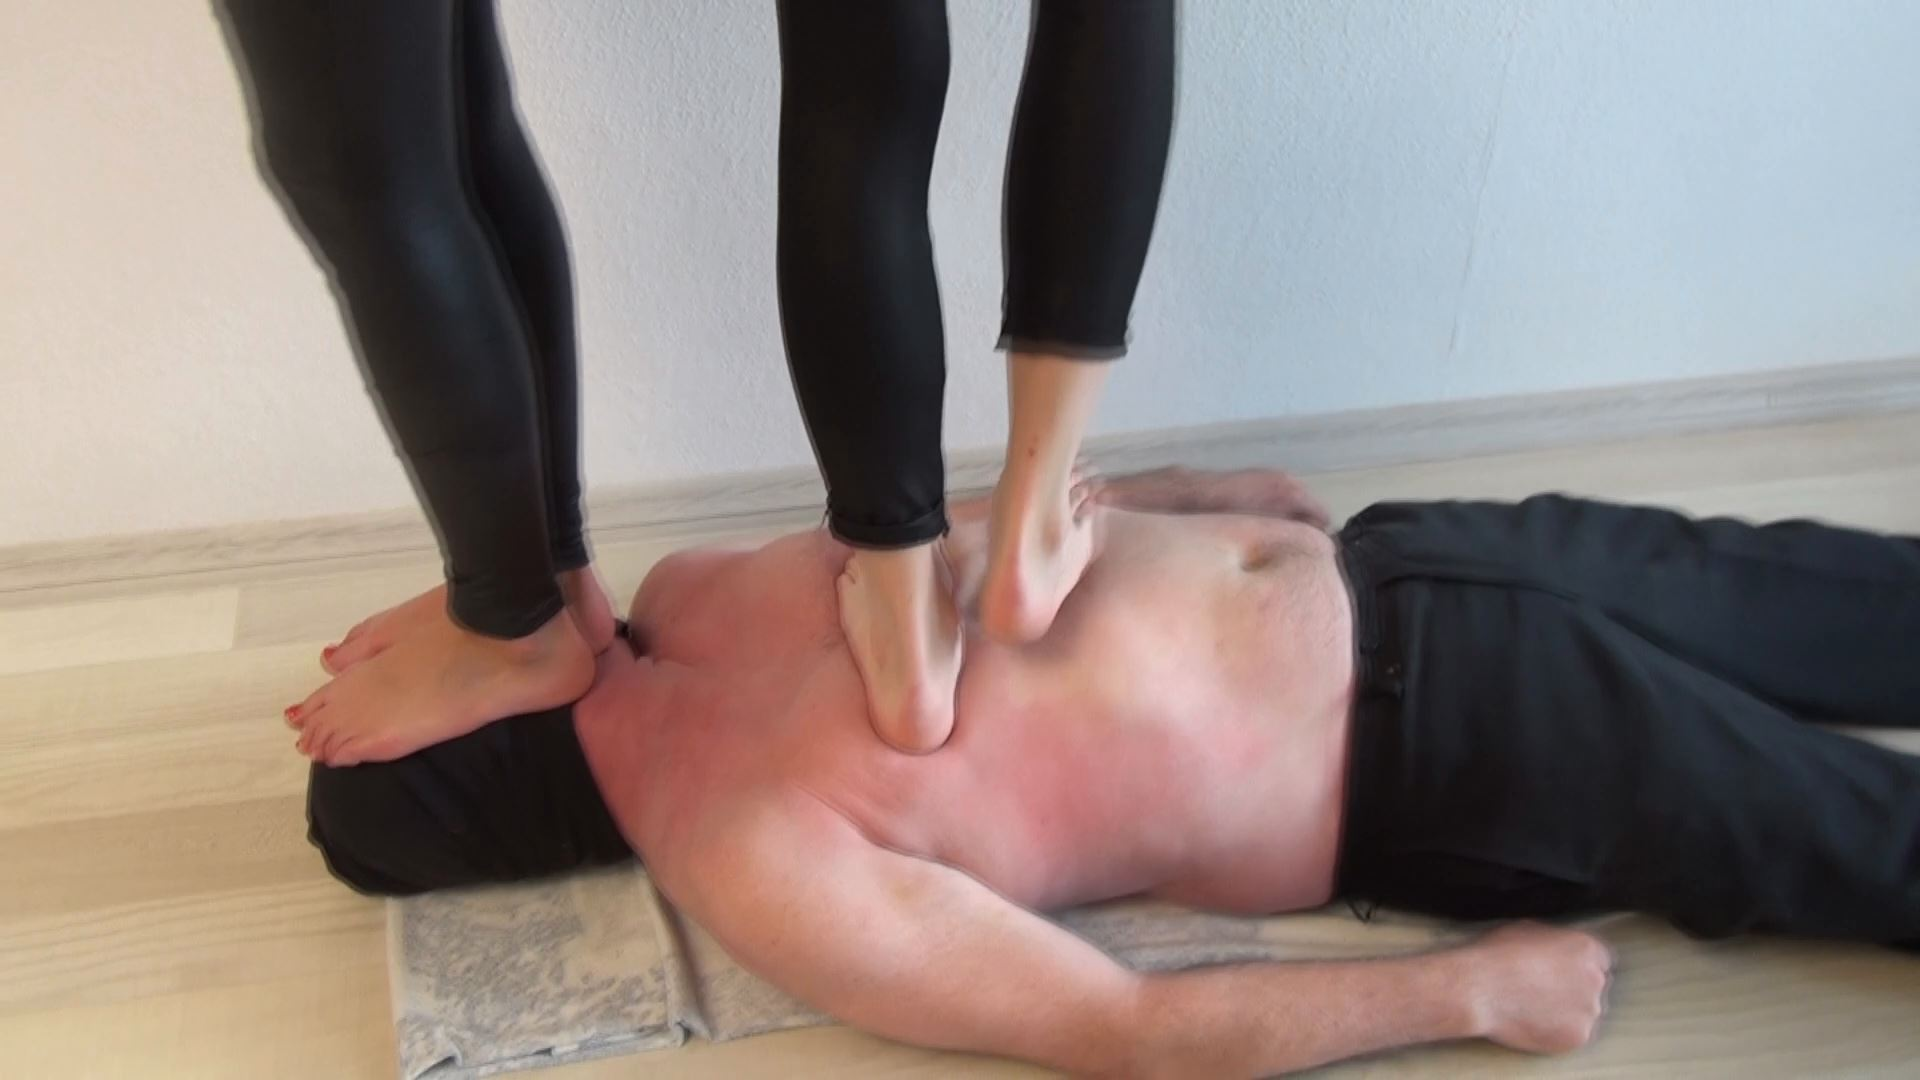 Mistress Loren, Candy In Scene: Hard trampling barefoot - ABBIECATFETISH - FULL HD/1080p/MP4